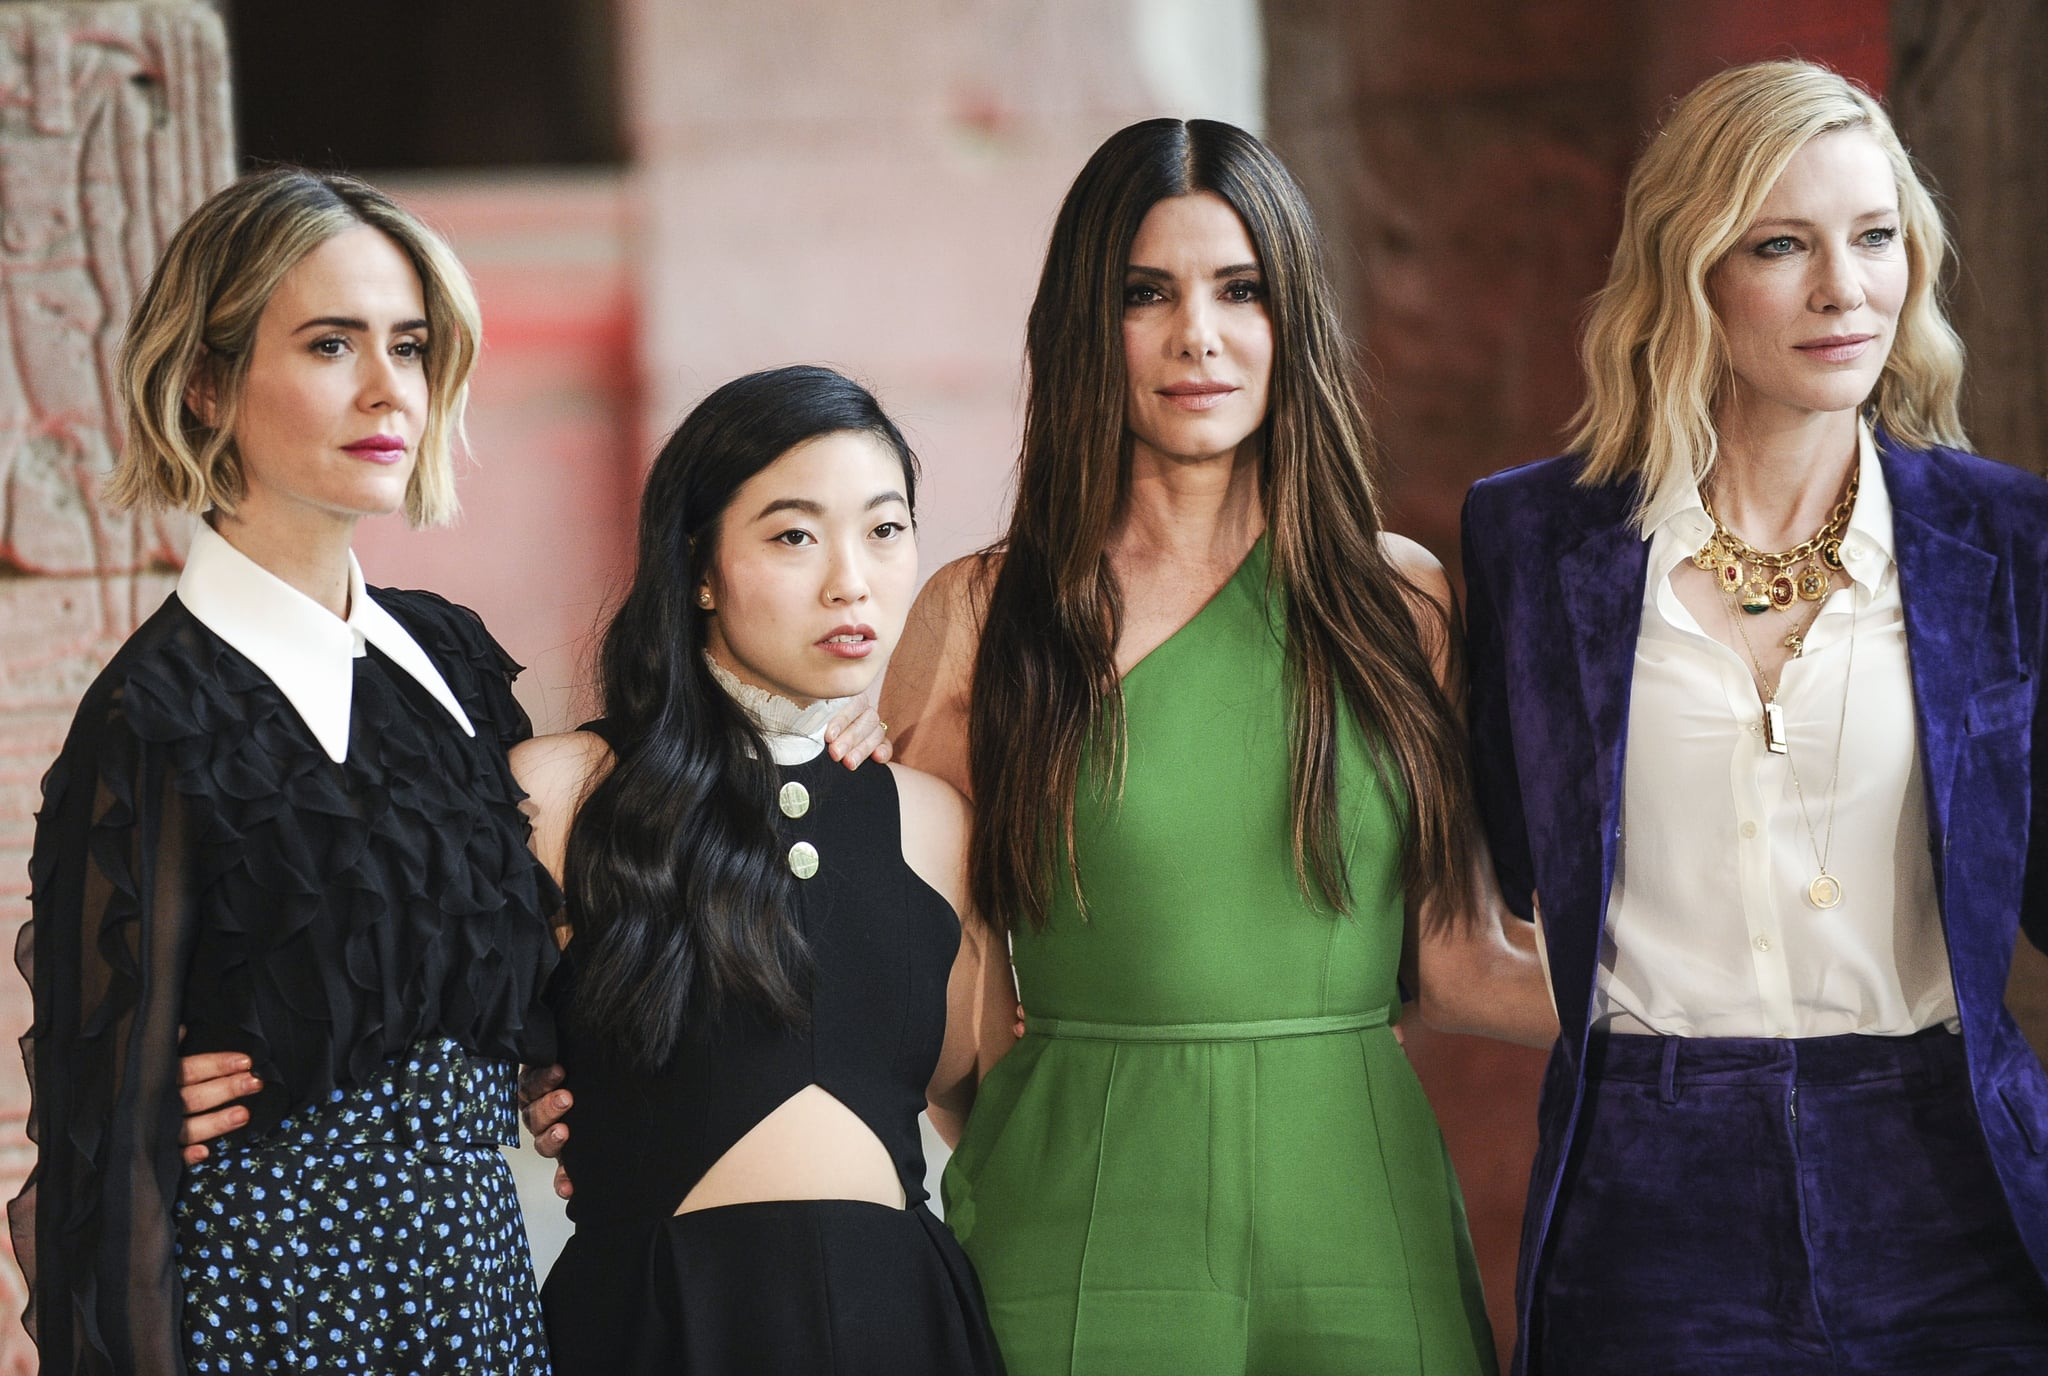 NEW YORK, NY - MAY 22:  (L-R) Sarah Paulson, Awkwafina, Sandra Bullock and Cate Blanchett attend the 'Ocean's 8' worldwide photo call at The Metropolitan Museum of Art on May 22, 2018 in New York City.  (Photo by Daniel Zuchnik/FilmMagic)